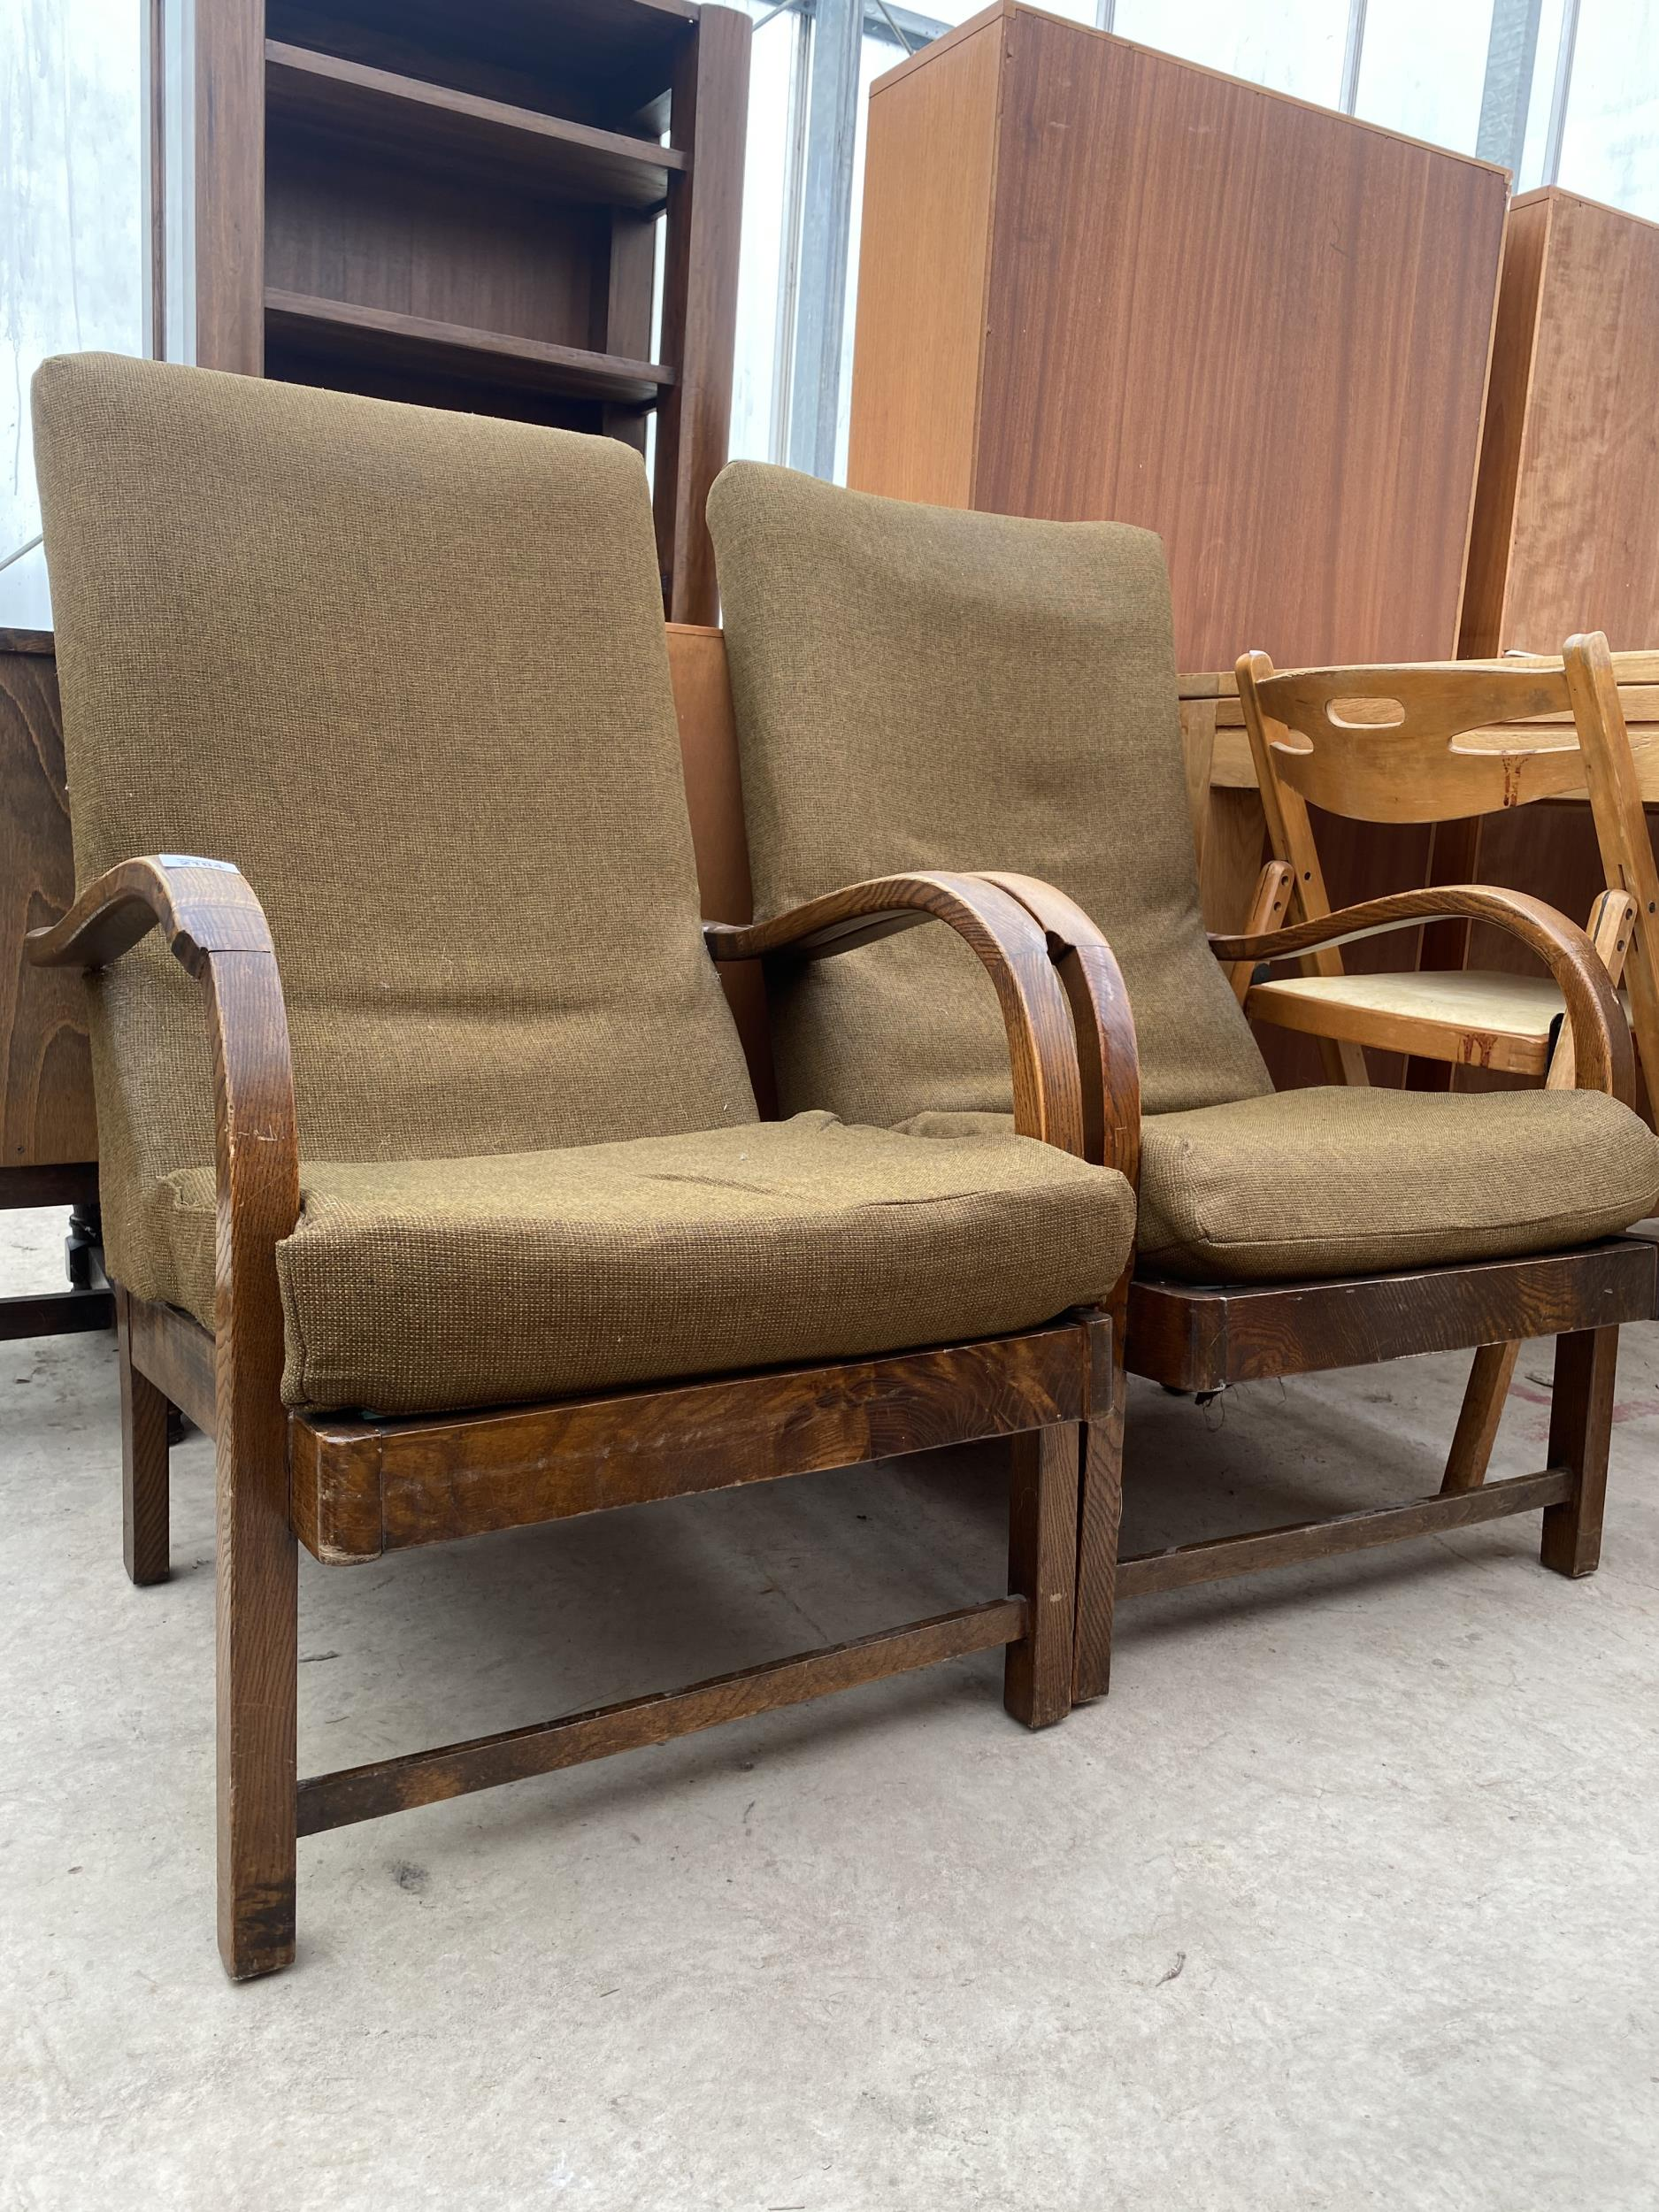 A PAIR OF ART DECO STYLE FIRESIDE CHAIRS - Image 3 of 4